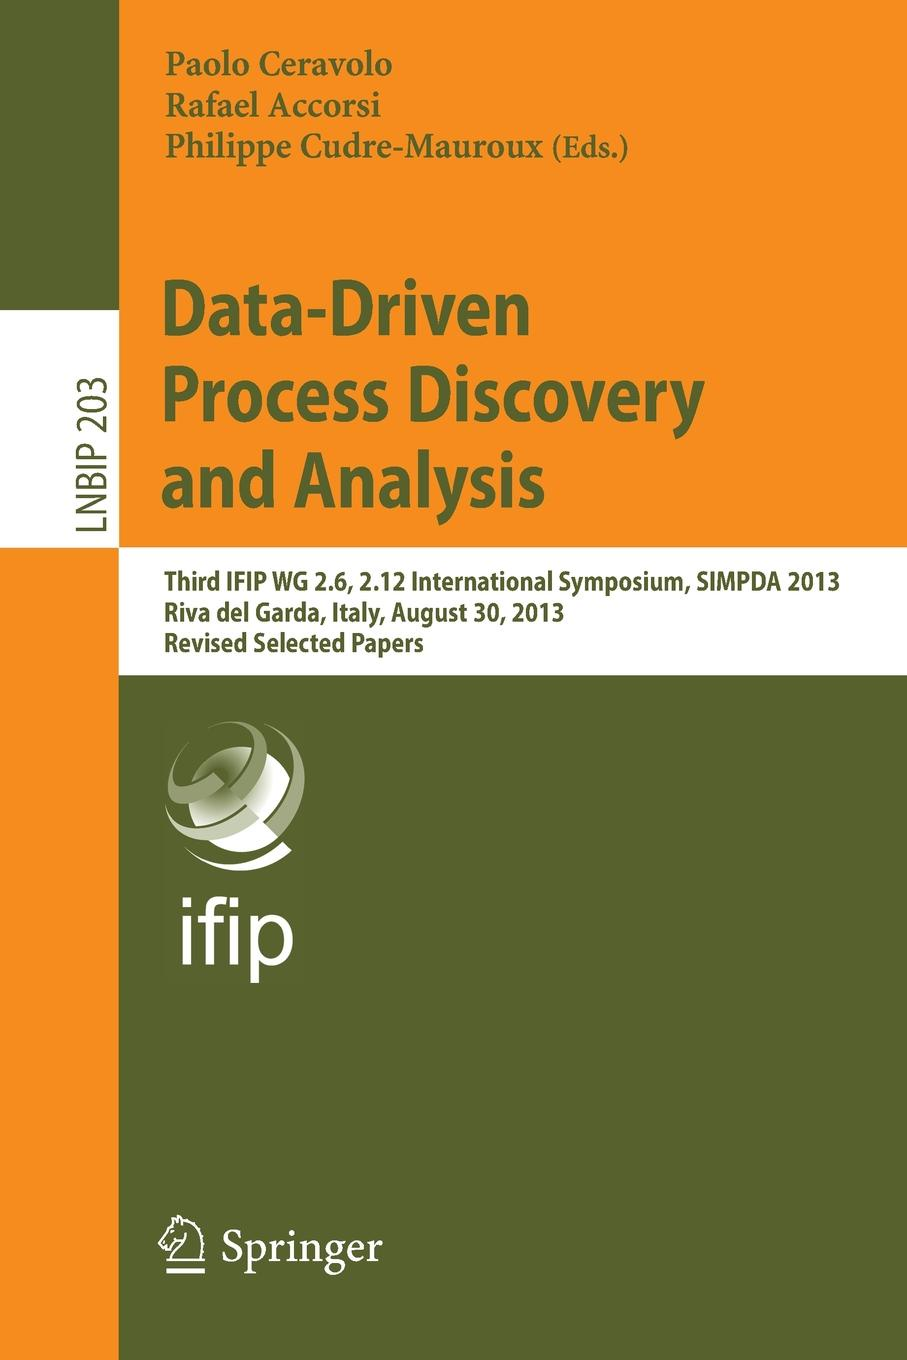 Data-Driven Process Discovery and Analysis Third IFIP WG 26 212 International Symposium SIMPDA 2013 Riva del Garda Italy August 30 2013 Revised Selected Papers